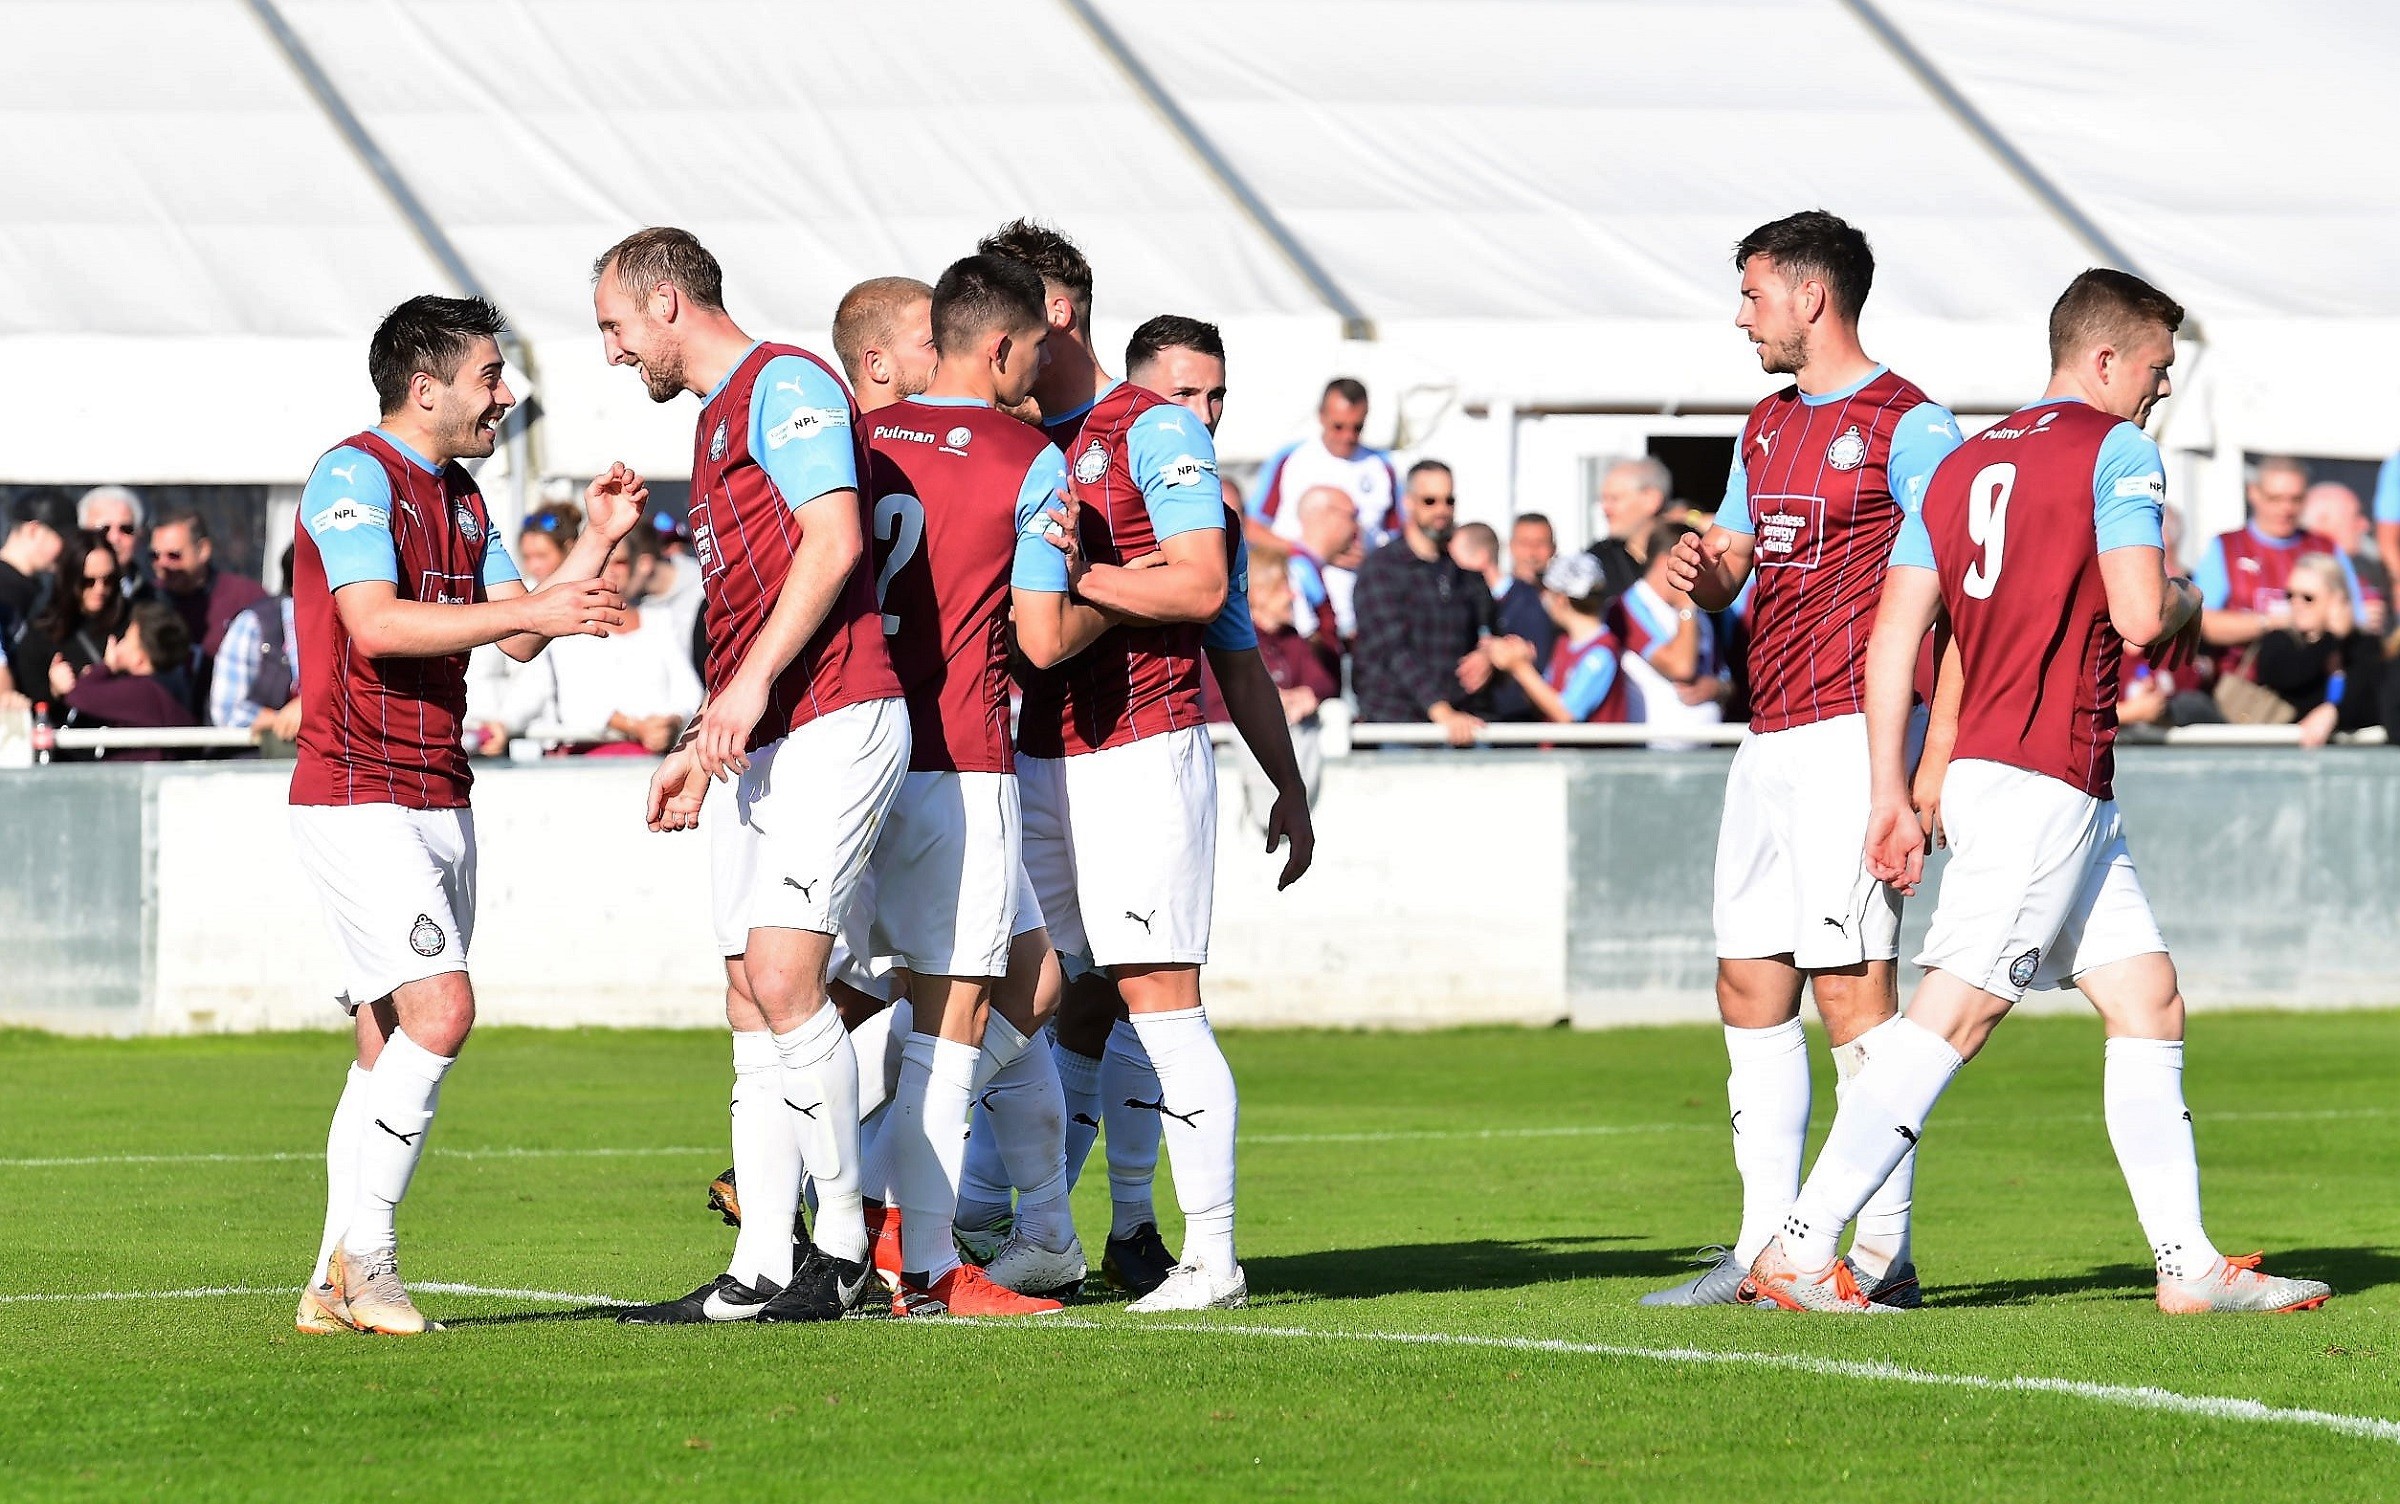 Match Preview: South Shields vs Atherton Collieries, BetVictor Northern Premier Division